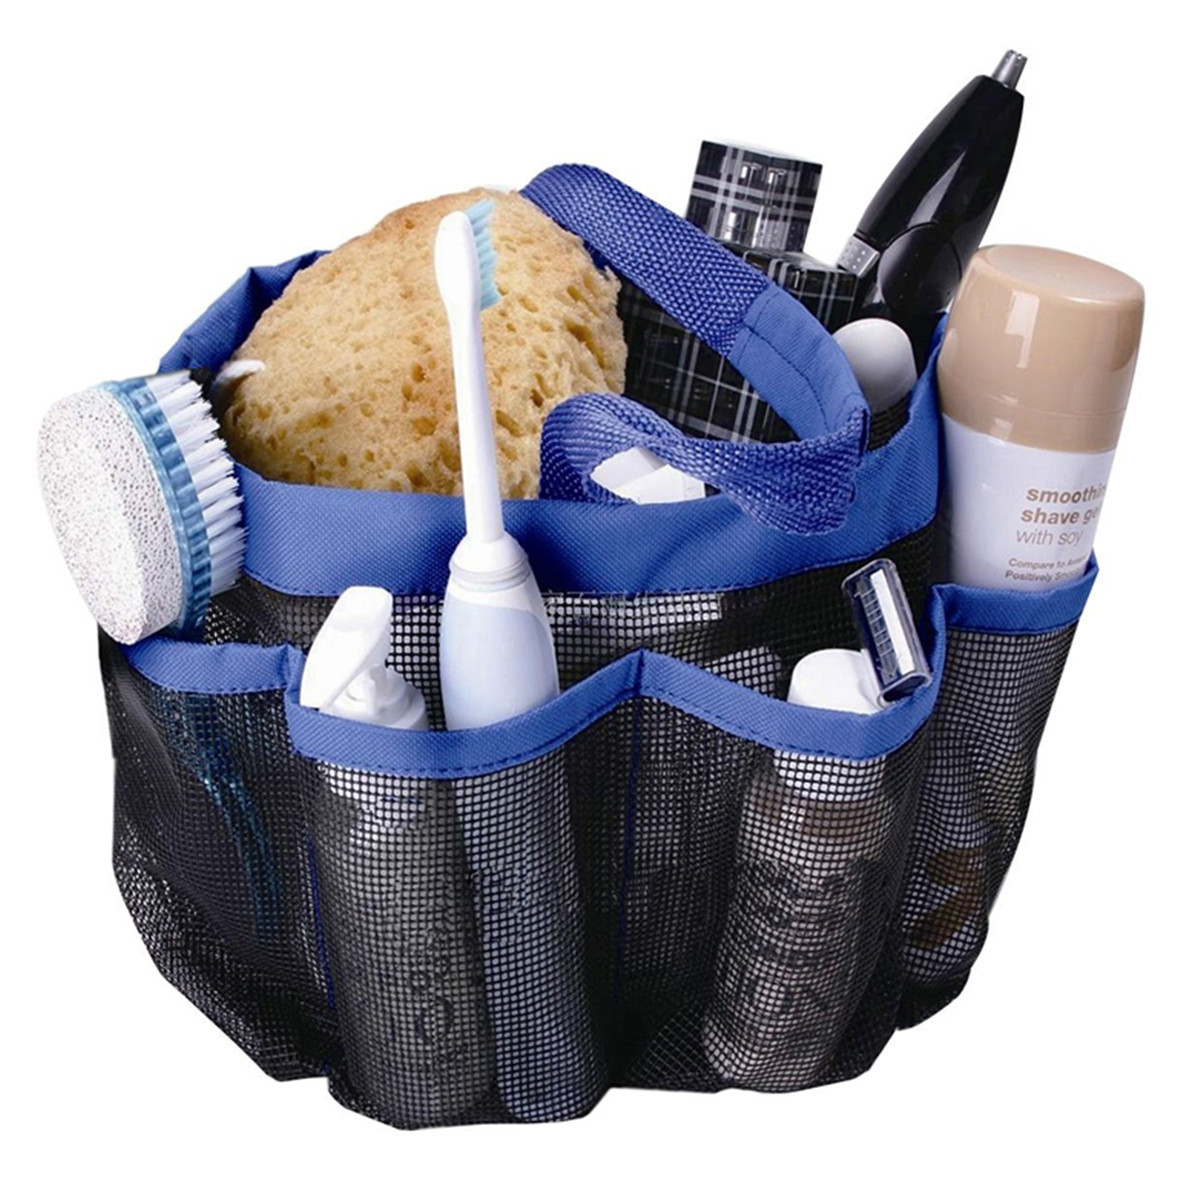 8 Pockets Shower Caddy Mesh Portable Quick Dry Travel Tote Carry ...